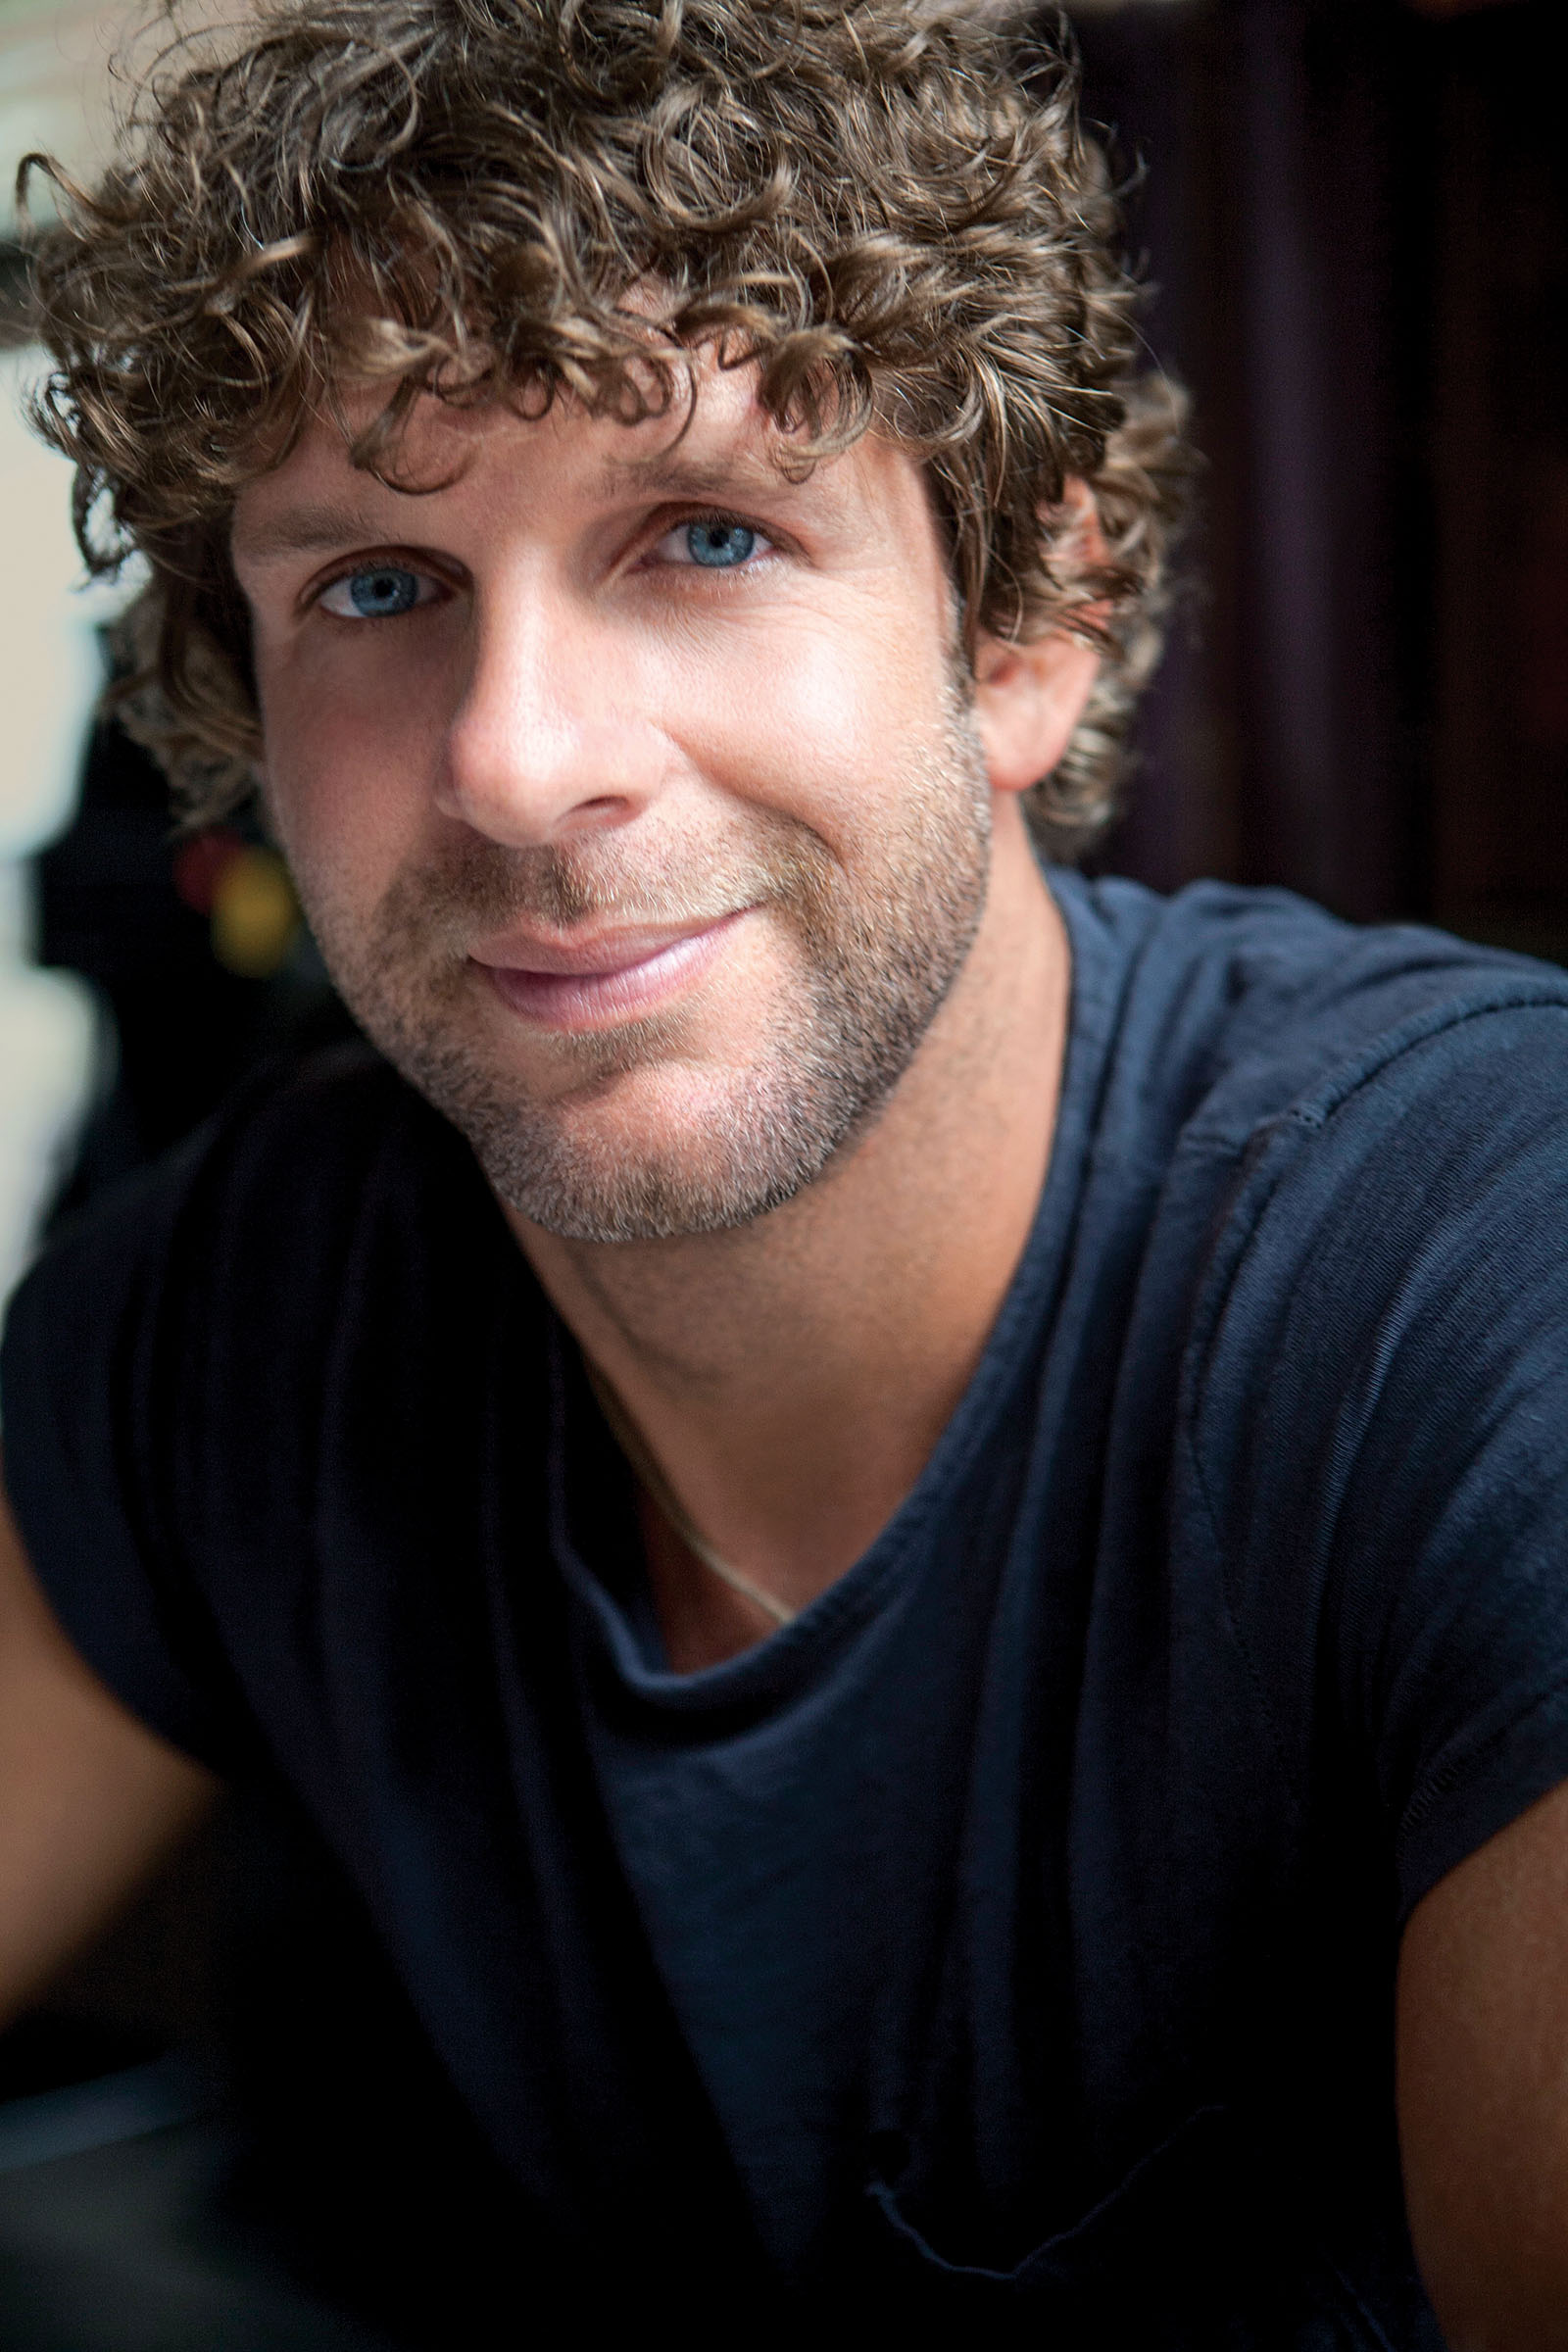 Billy Currington Lifehouse Headline 2014 Sonoma County Fair Arts